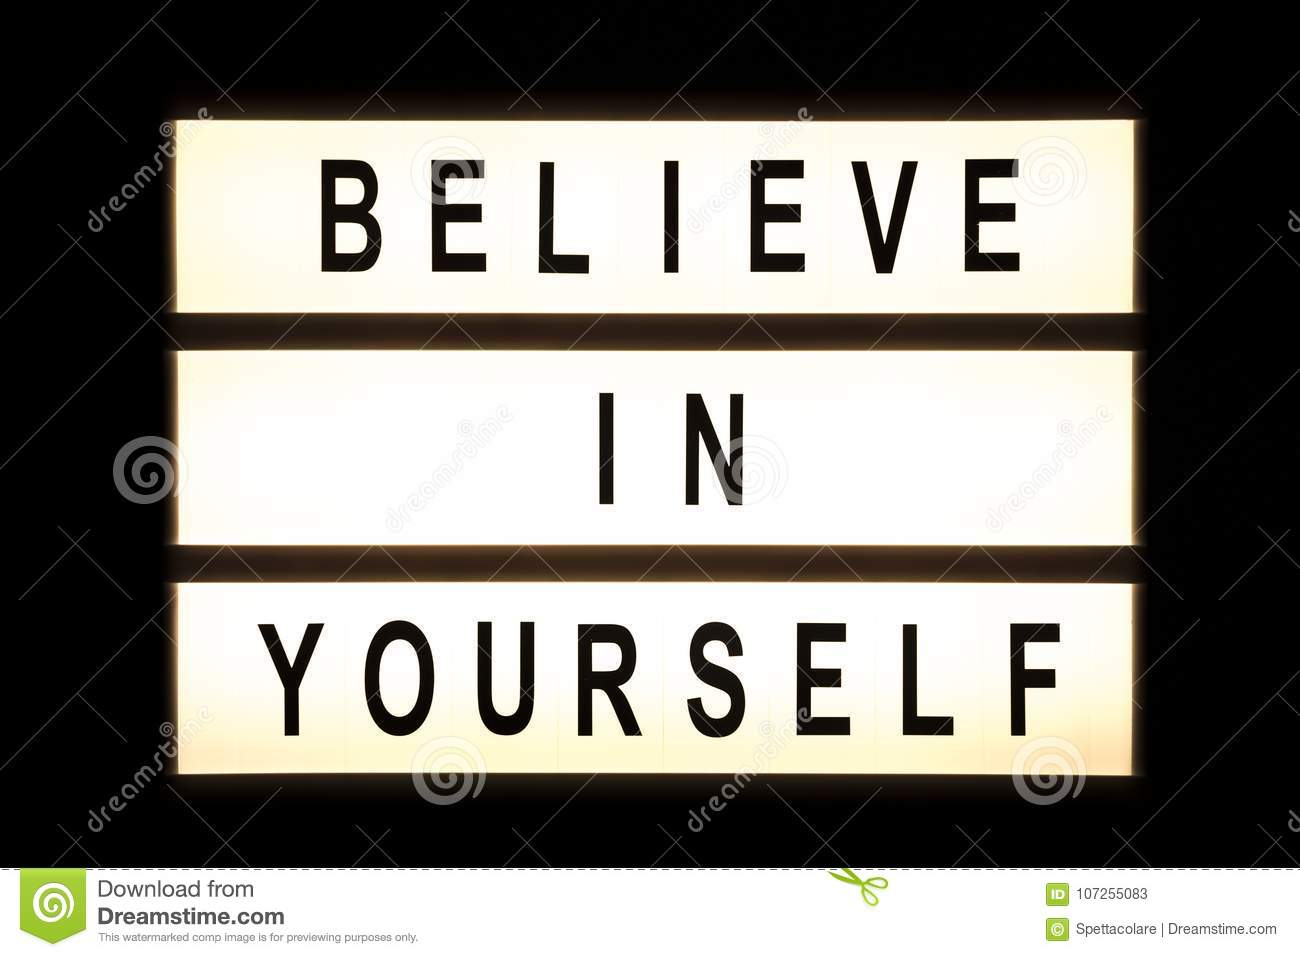 Believe In Yourself Hanging Light Box Stock Image - Image of